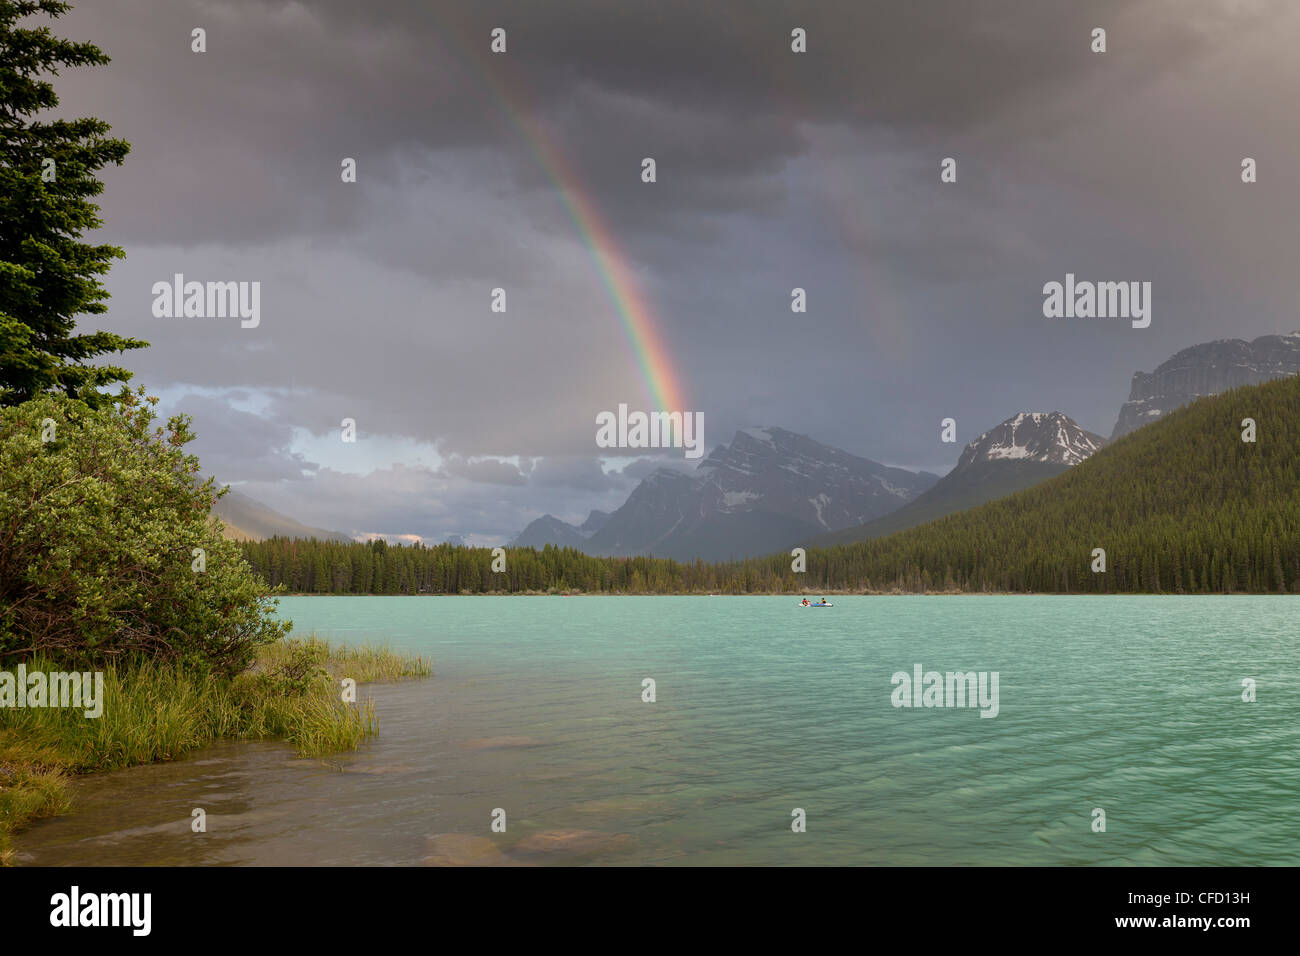 Boats and a canoe with rainbow over Lower Waterfowl Lake, Banff National Park, Alberta, Canada Stock Photo